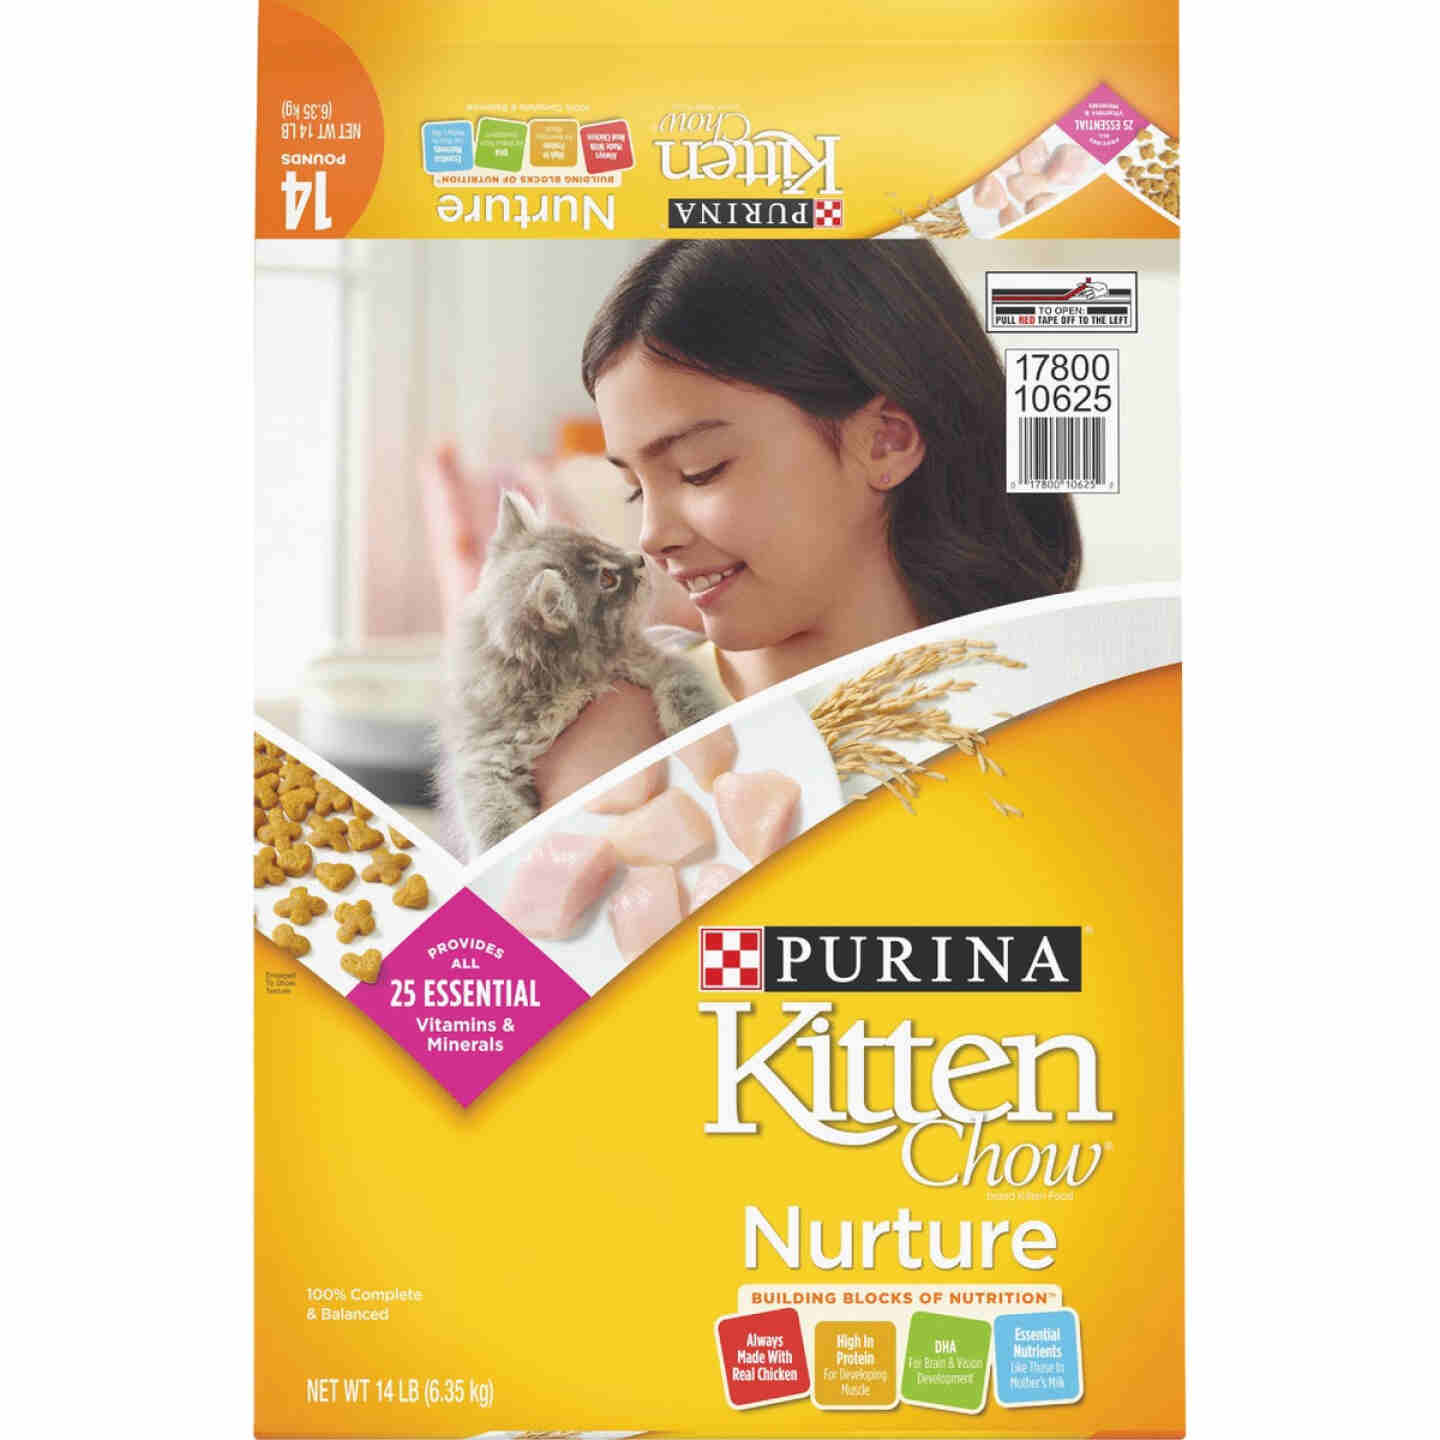 Purina Kitten Chow 14 Lb. Chicken Flavor Dry Kitten Food Image 1